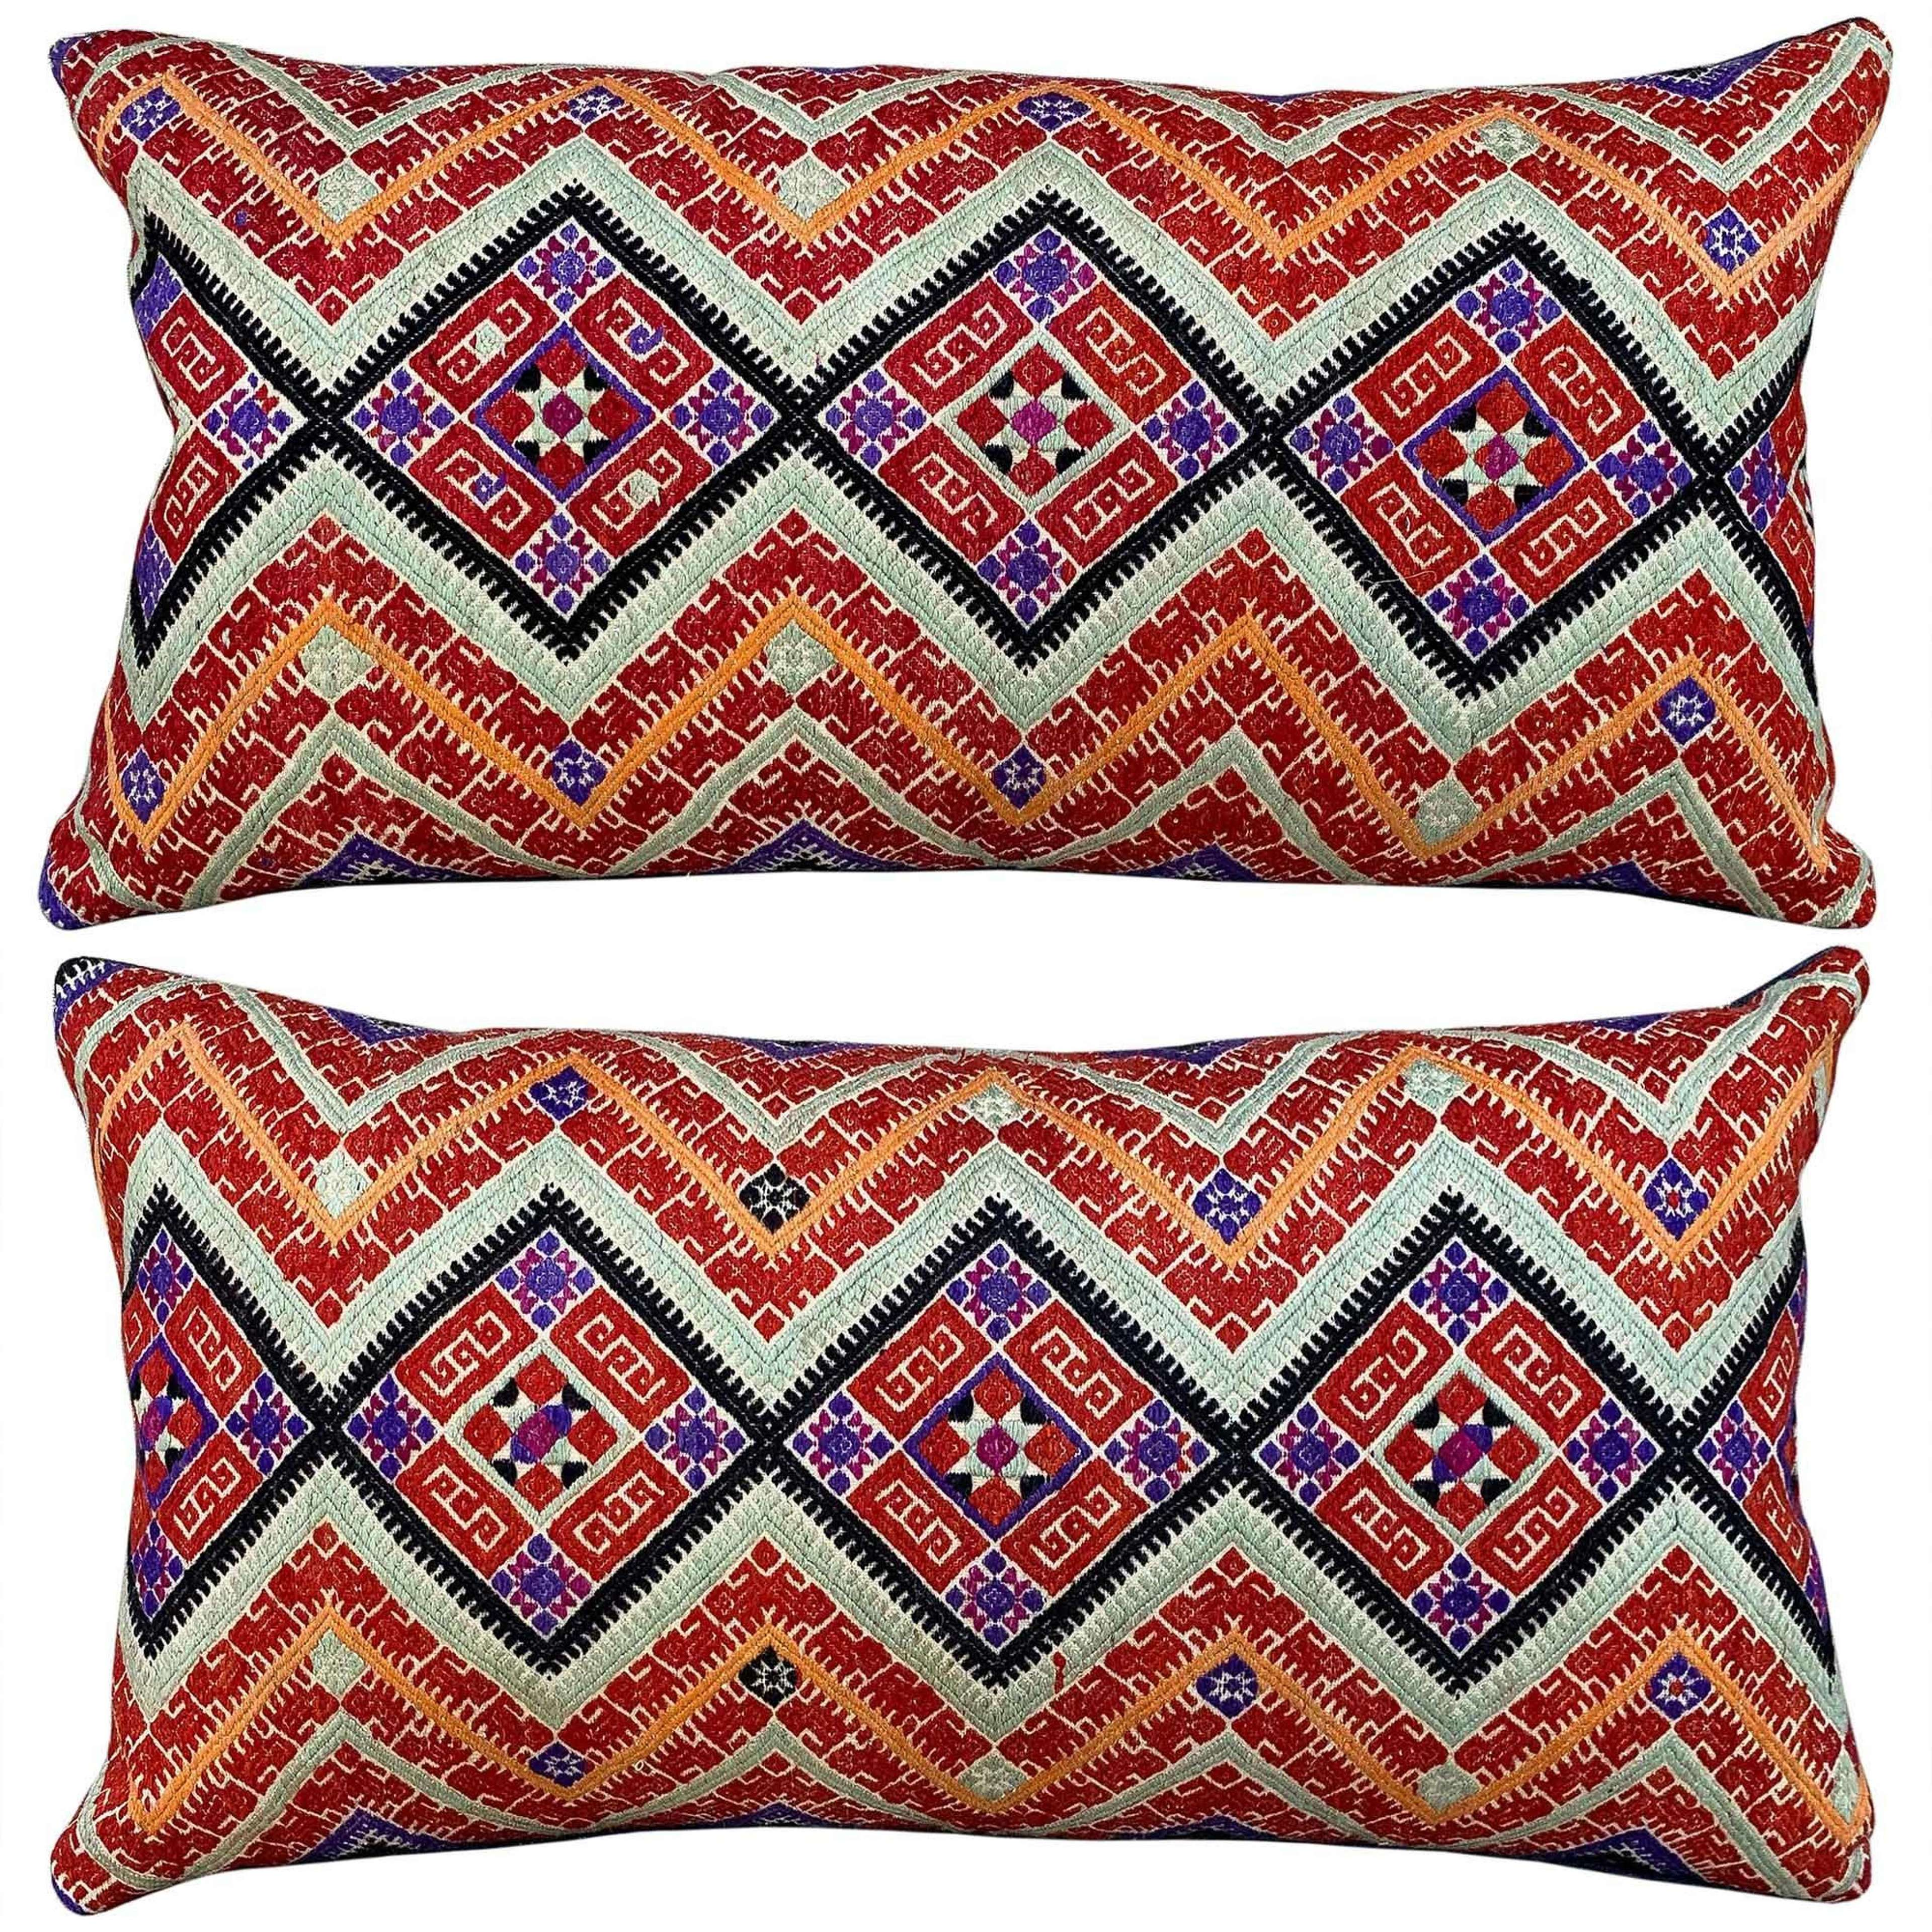 Zhuang baby blanket cushions